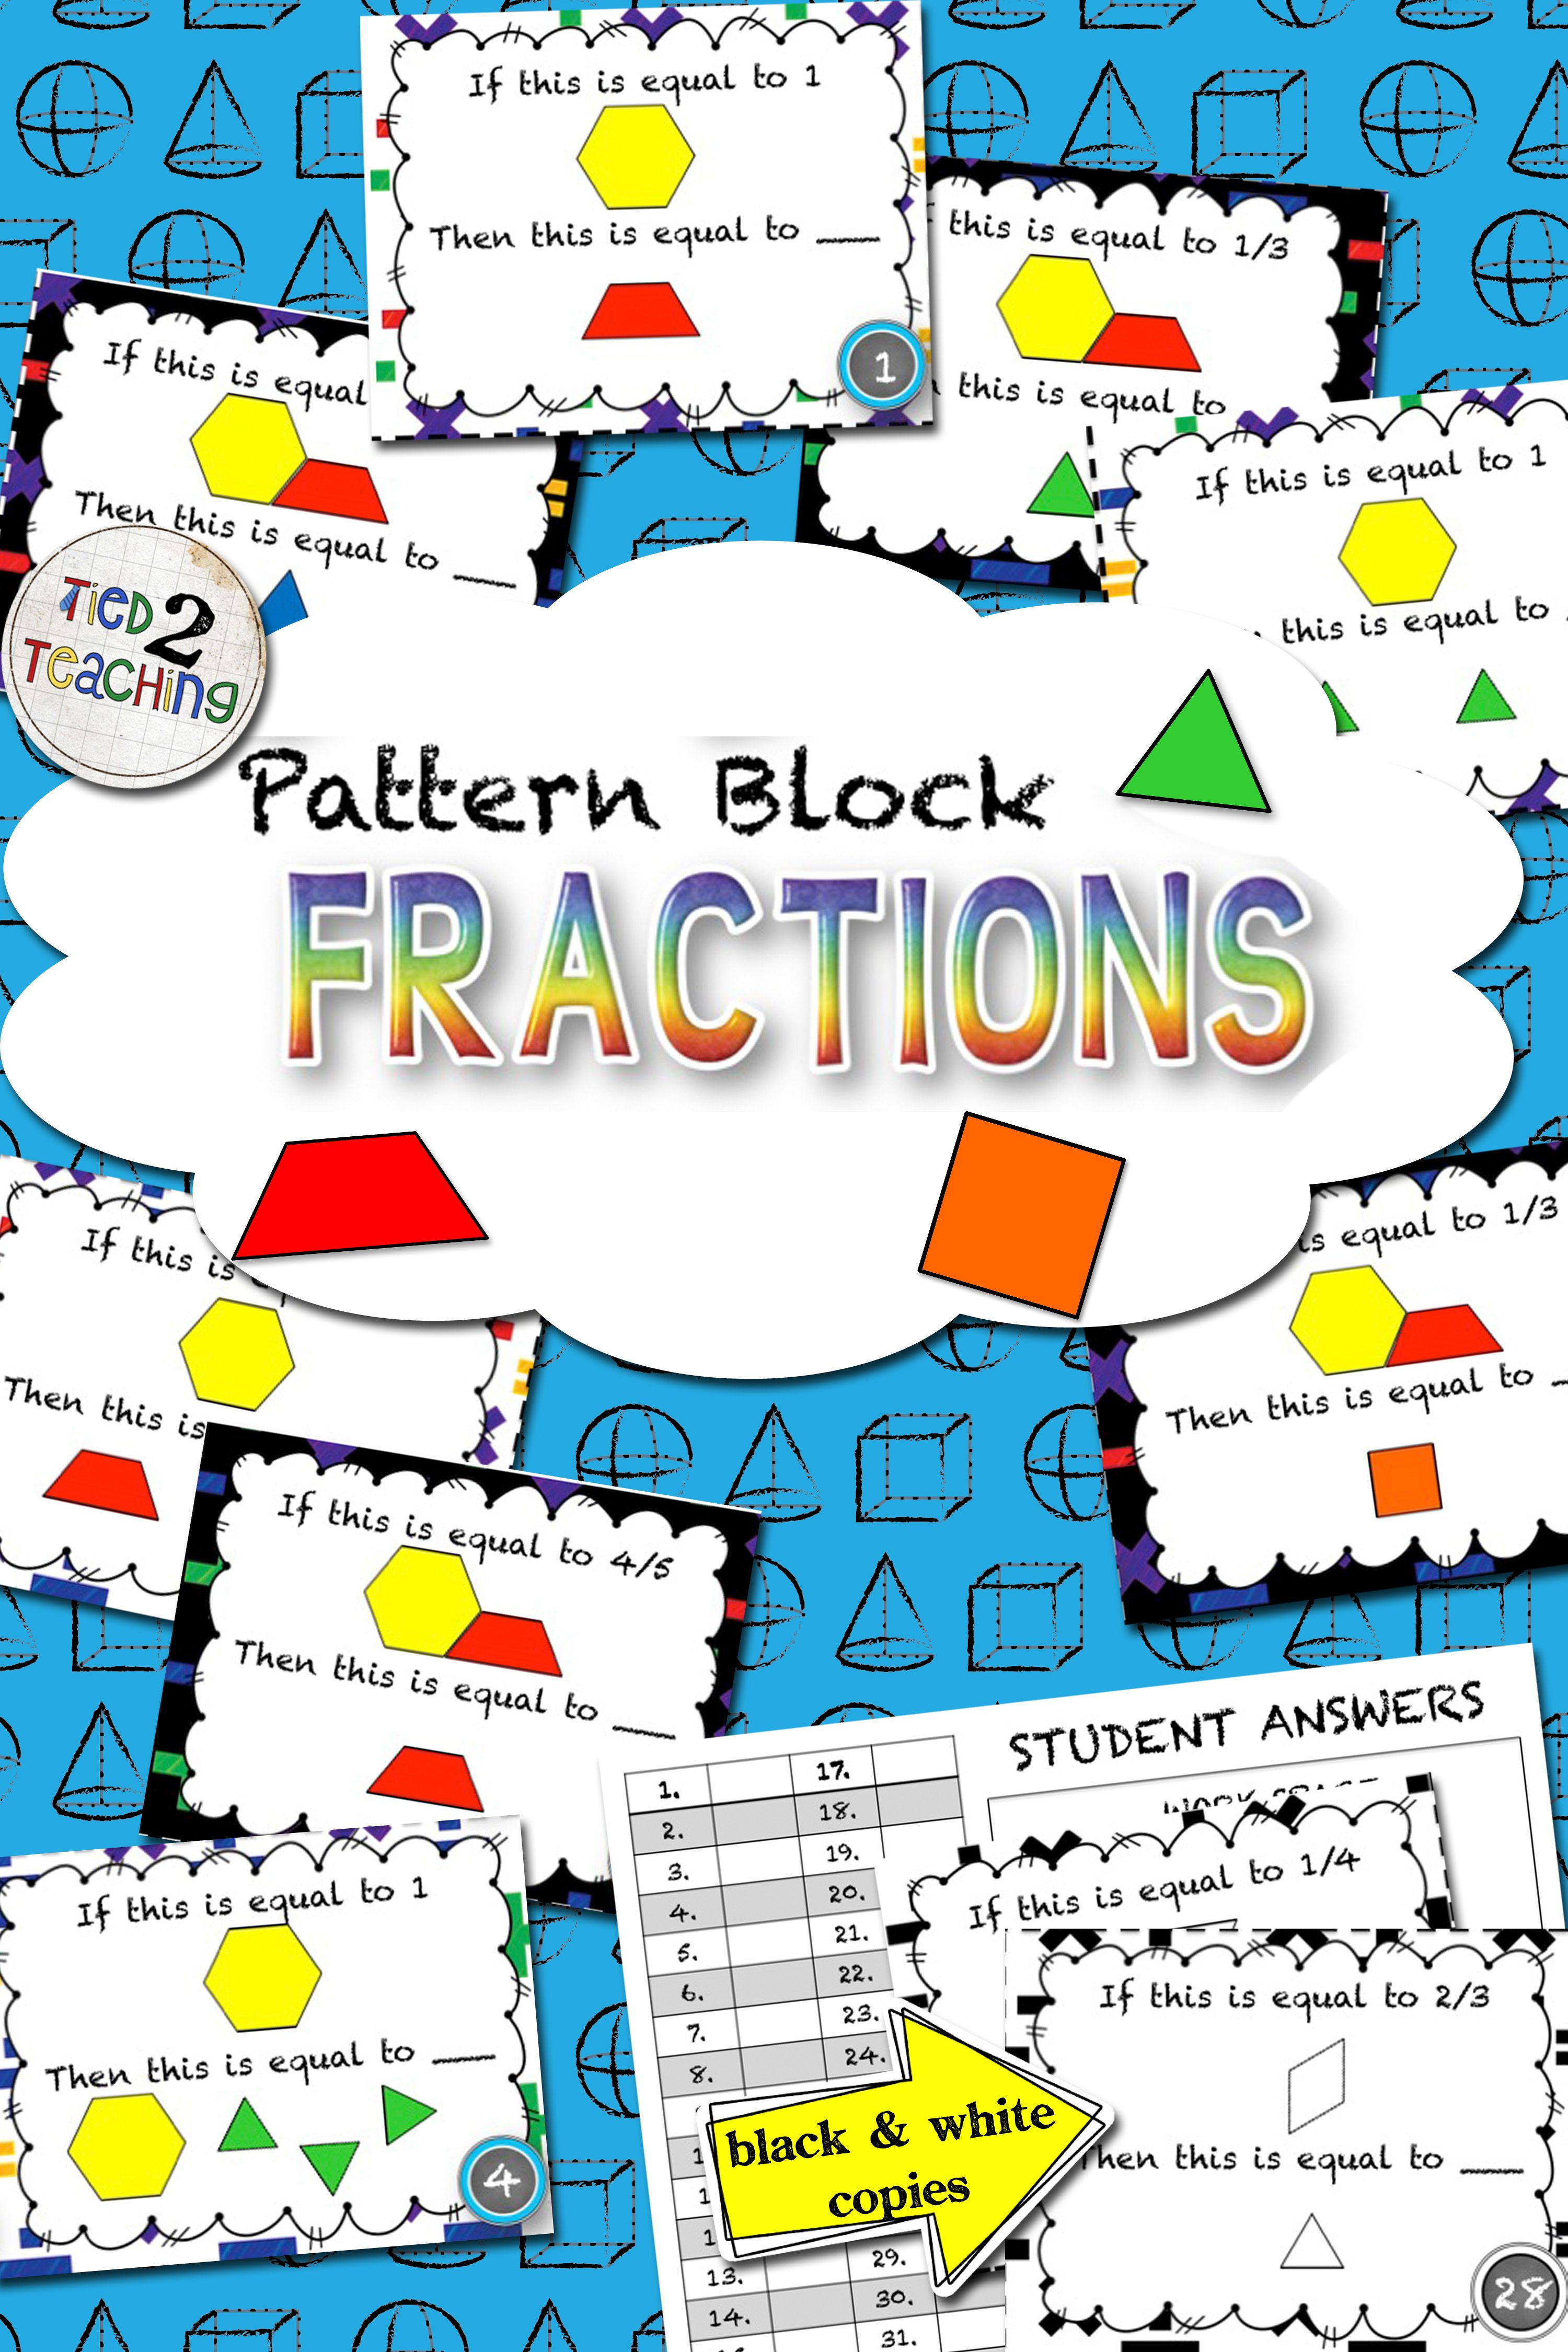 Pattern Block Fractions Task Cards For The Middle Grades Provides